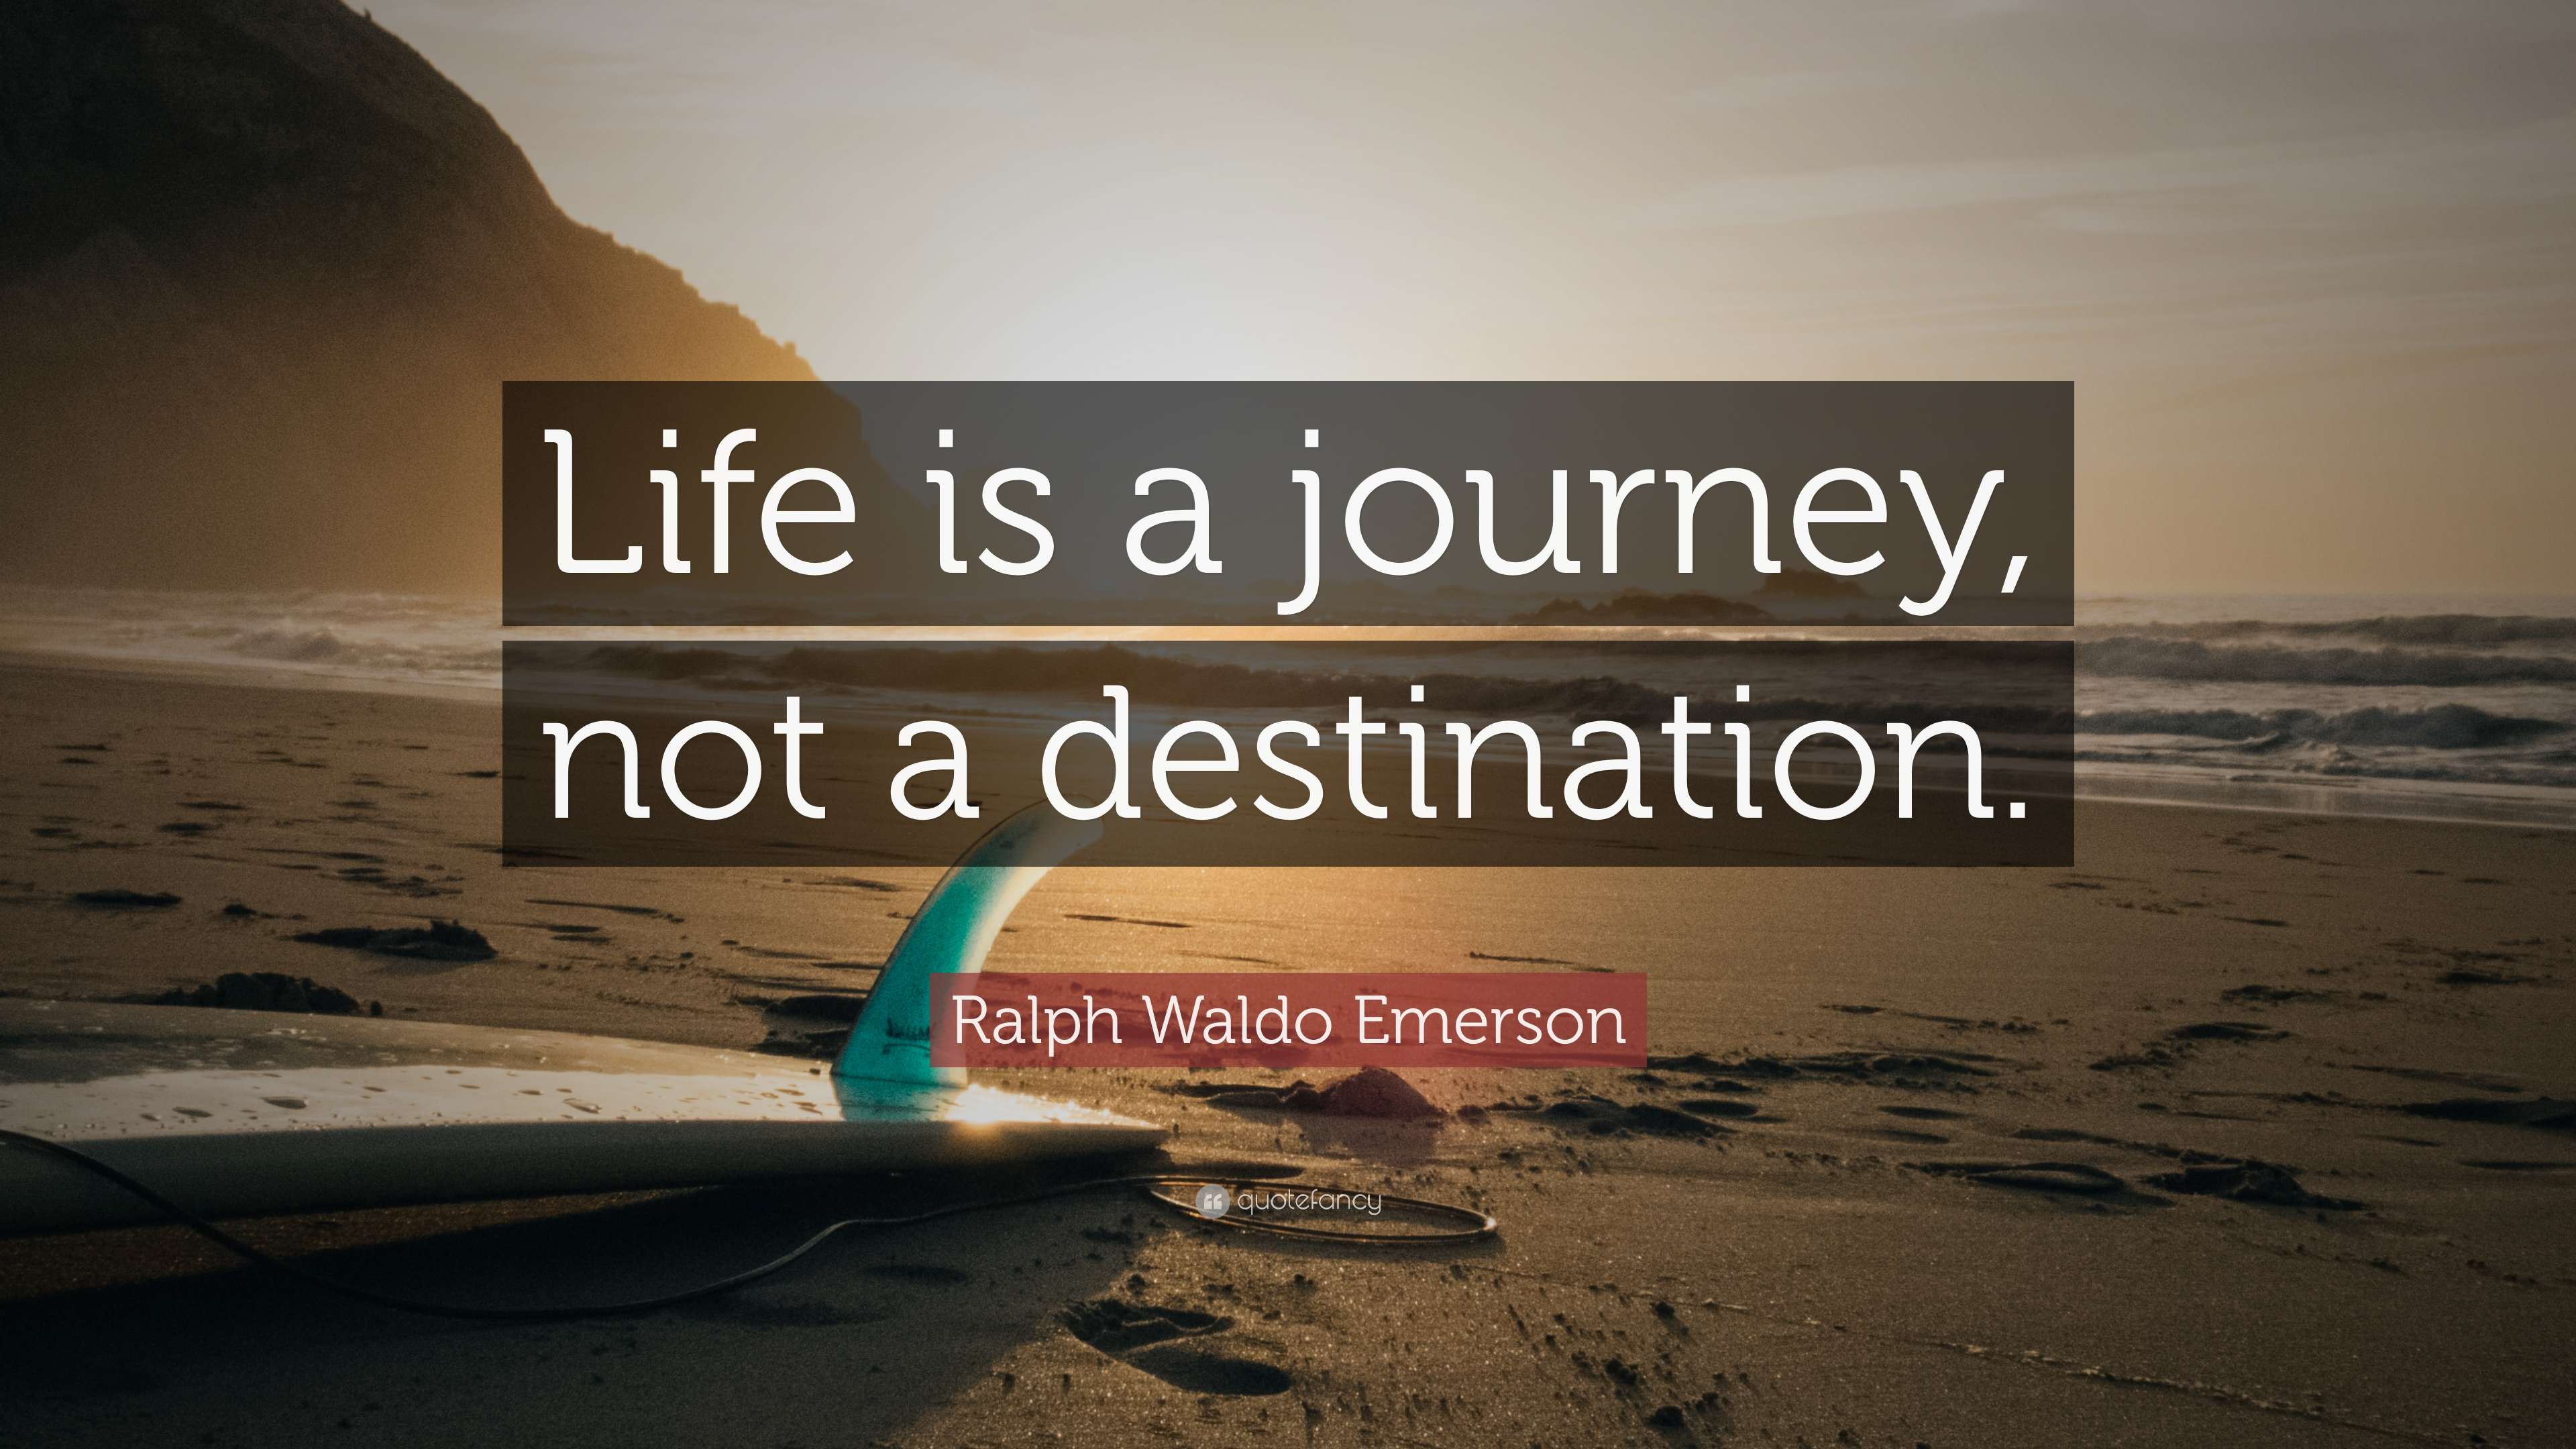 Ralph-Waldo-Emerson-Quote-Life-is-a-journey-not-a-destination